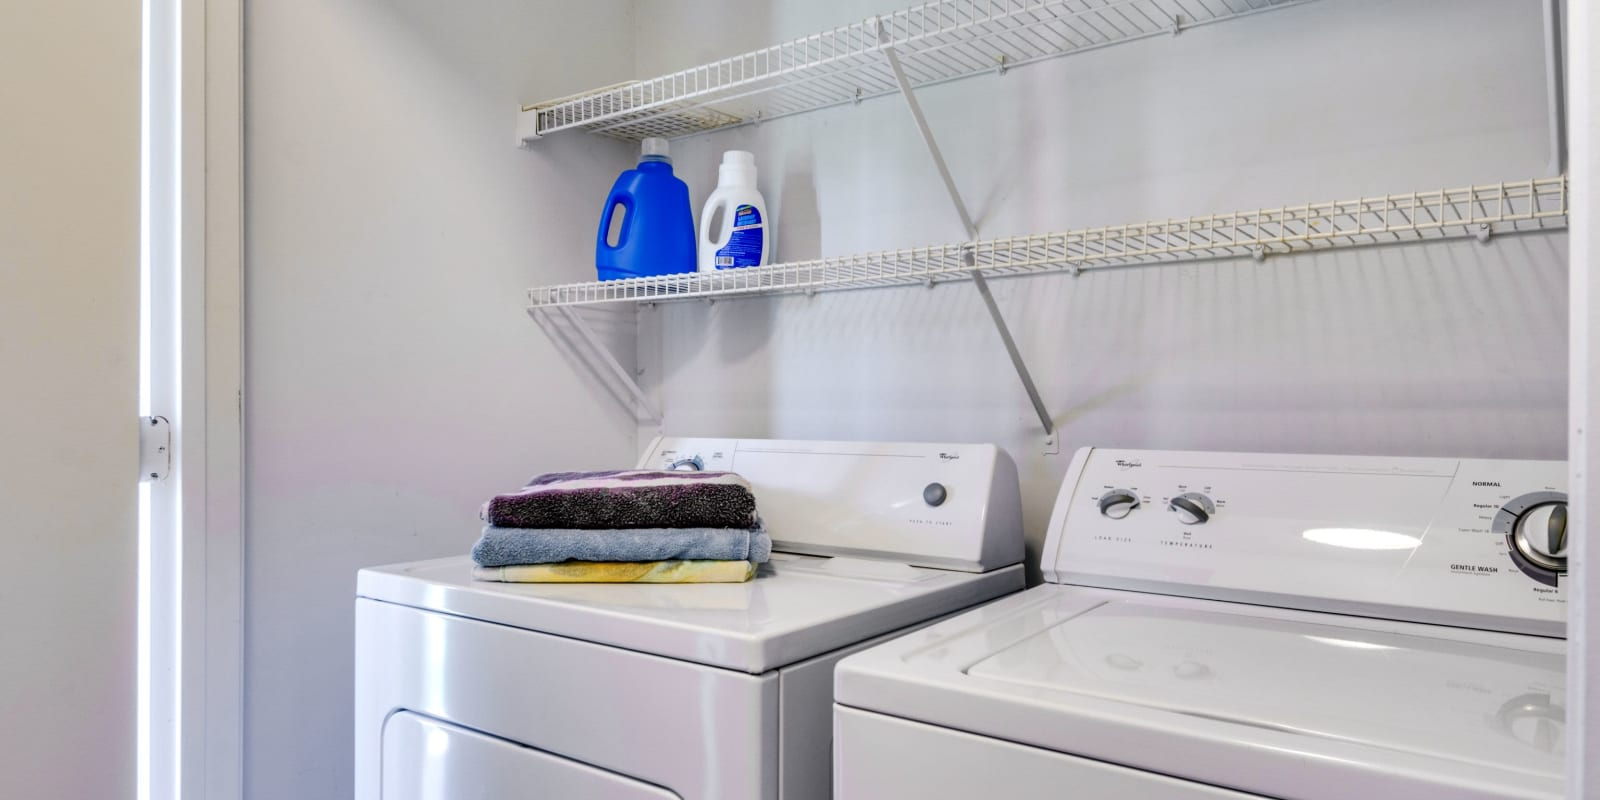 Washer and dryer room with shelving at Woodbrook Apartment Homes in Monroe, North Carolina